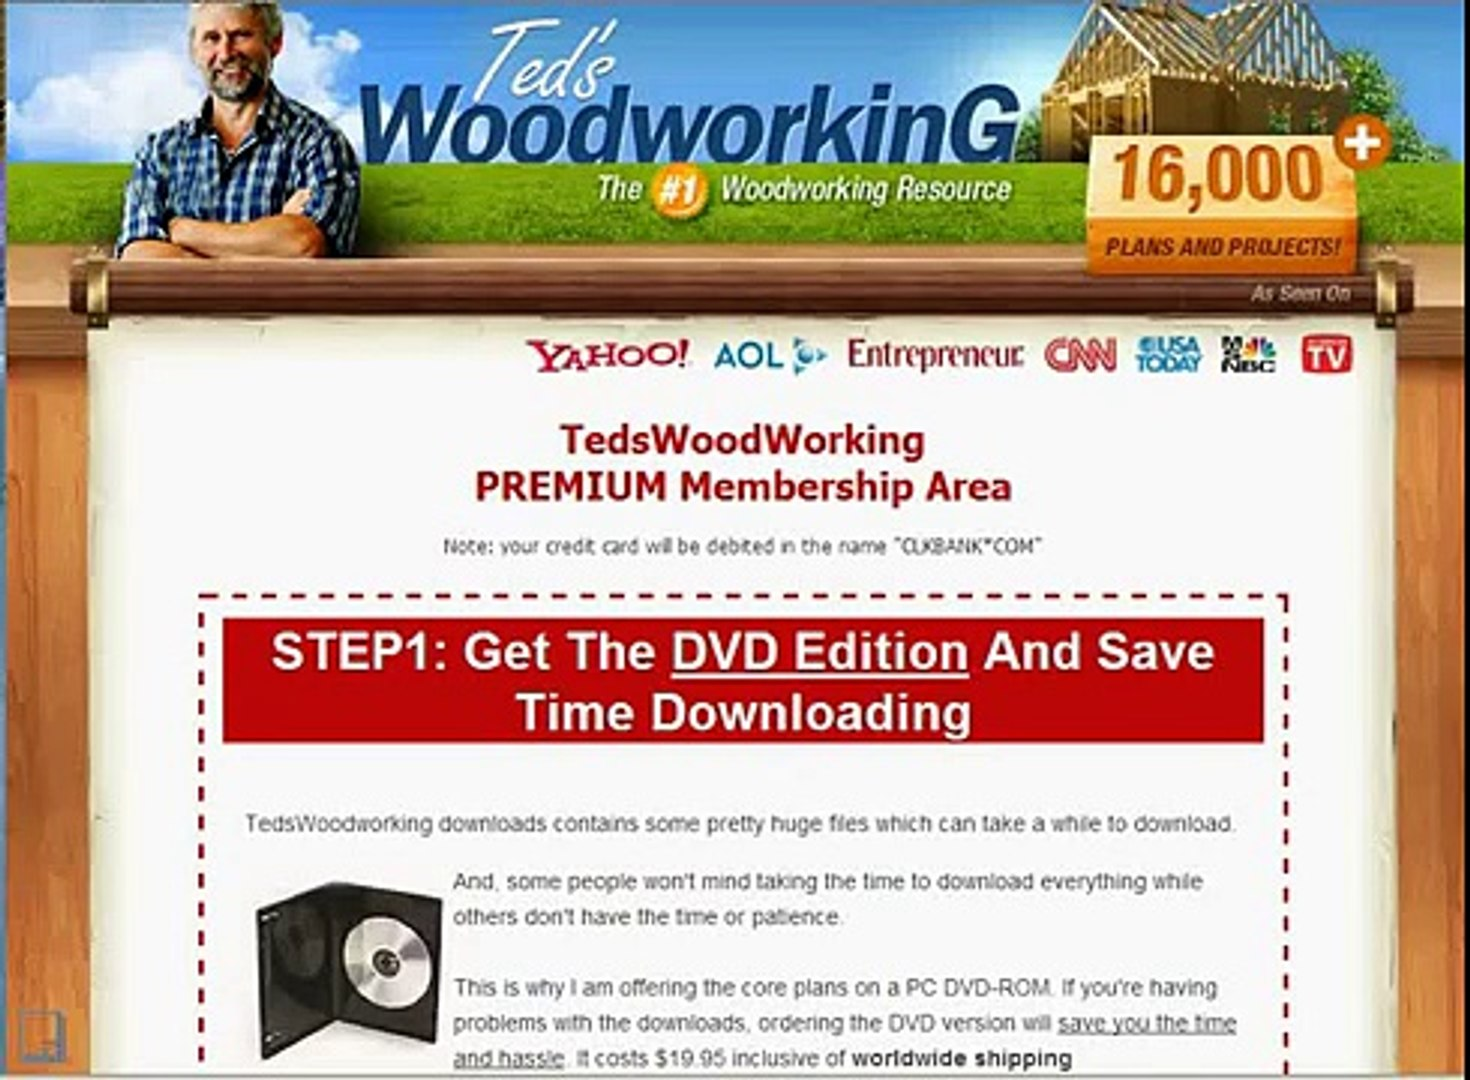 Teds Woodworking Review || Teds Wood Working Plan Review